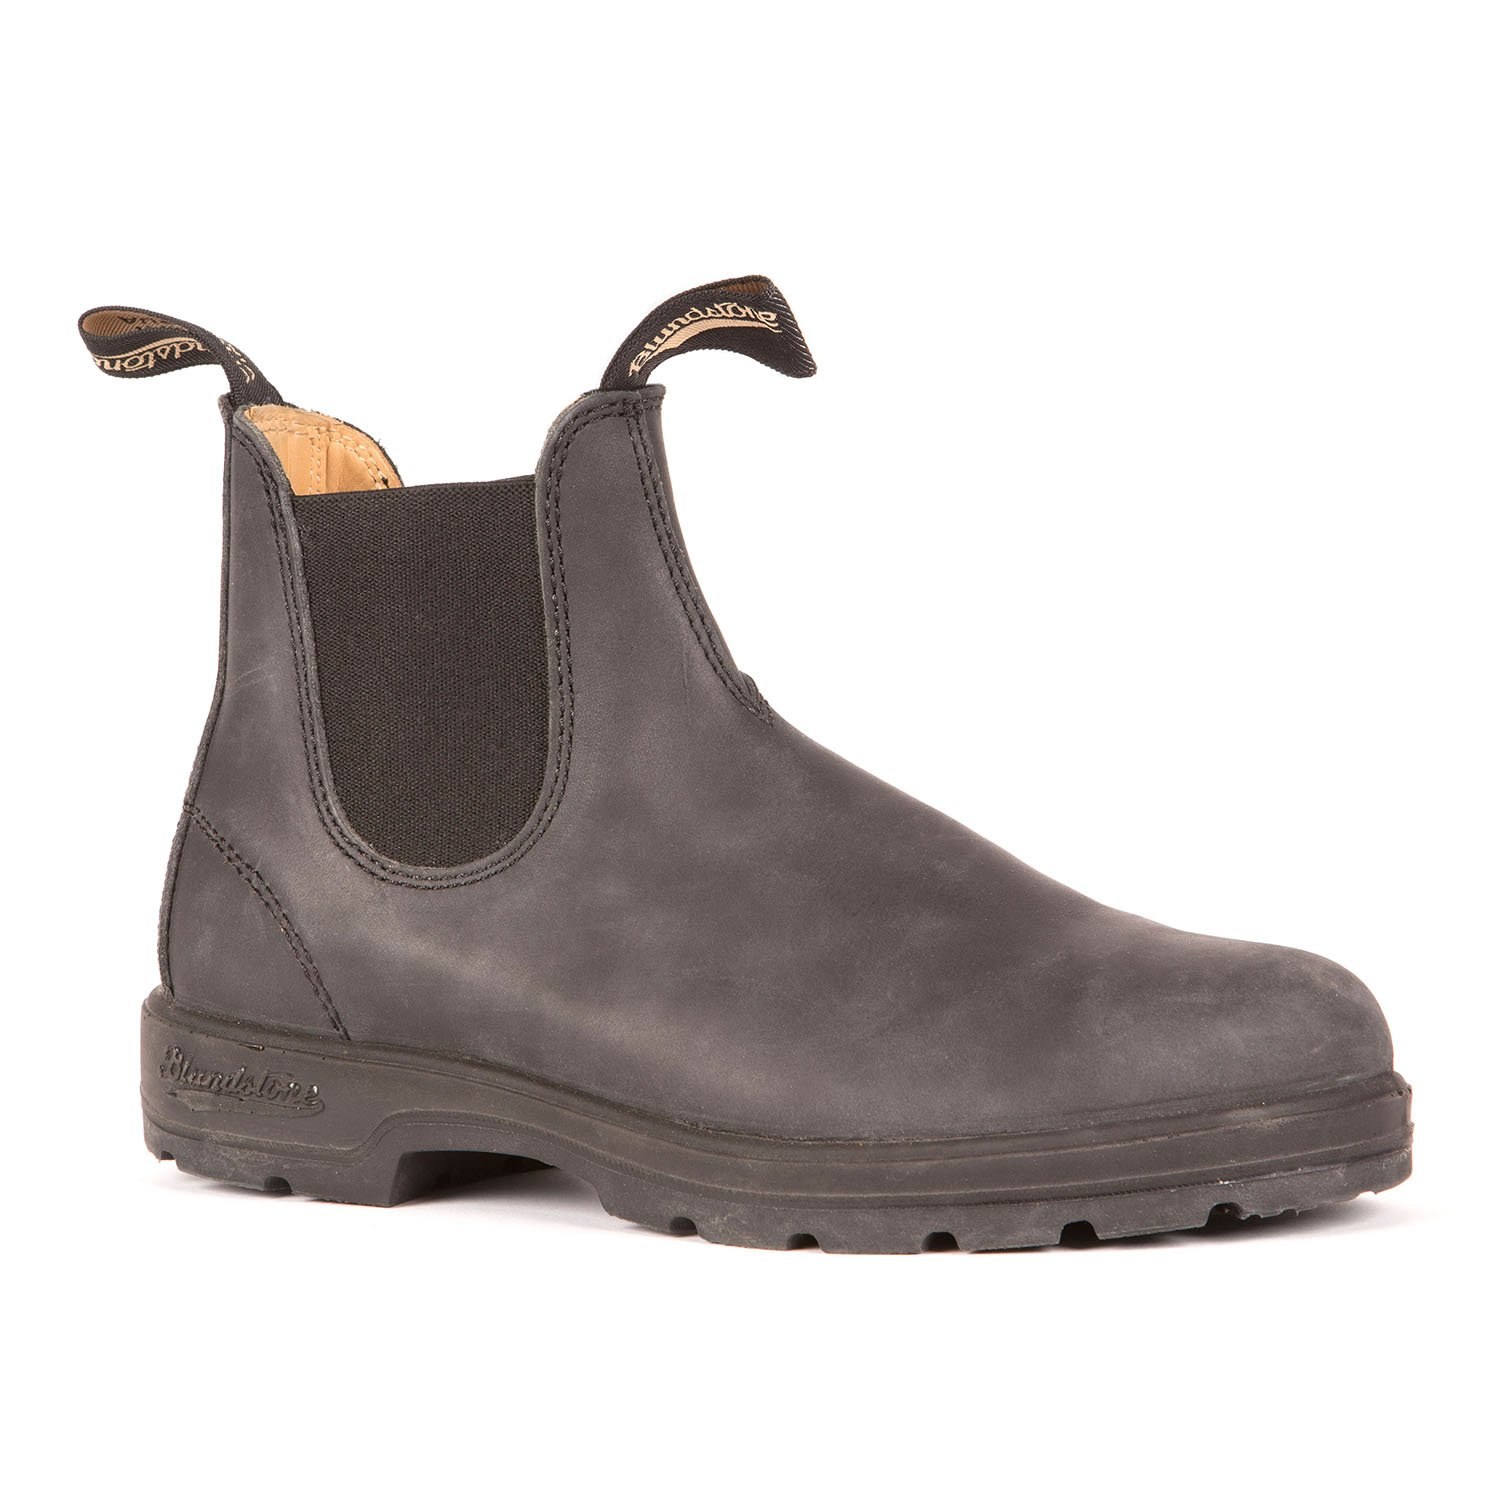 Blundstone 587 - Leather Lined Classic Rustic Black-Blundstone